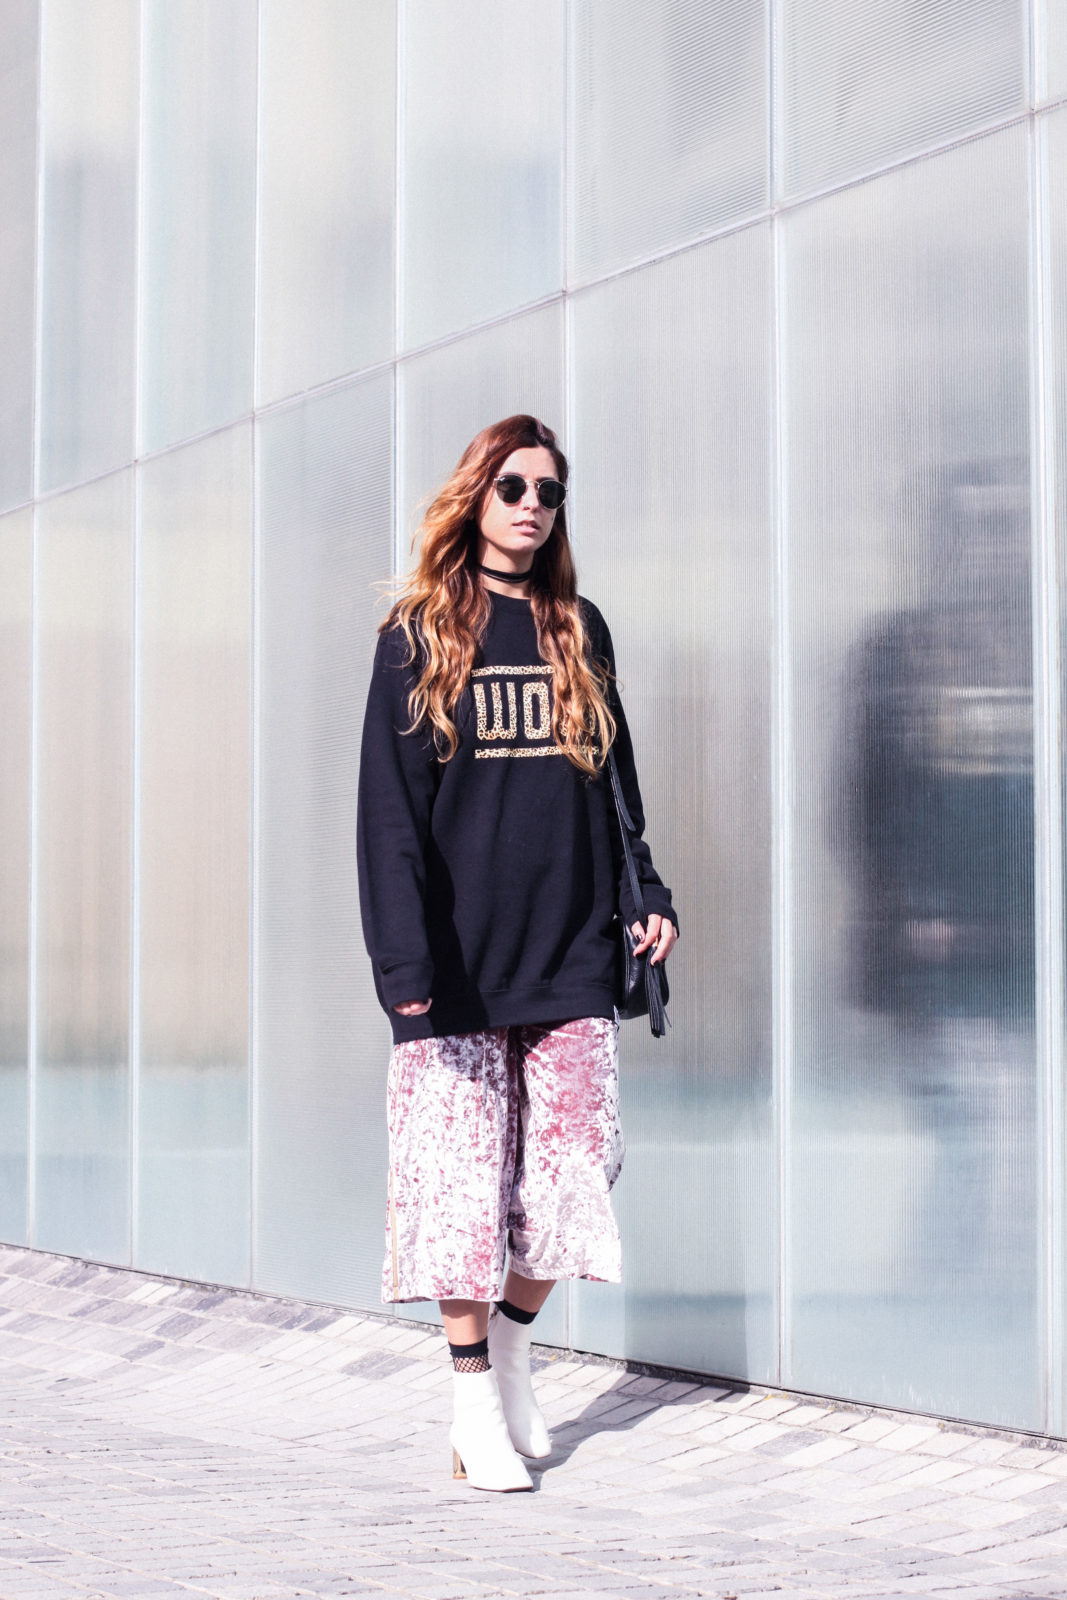 sudadera_woof_old_dogs_pantalones_terciopelo_rosa_botines_blancos_sweatshirt_oversize_choker_calcetines_rejilla_tendencias_2016_fall_trends_street_style_donkeycool-12